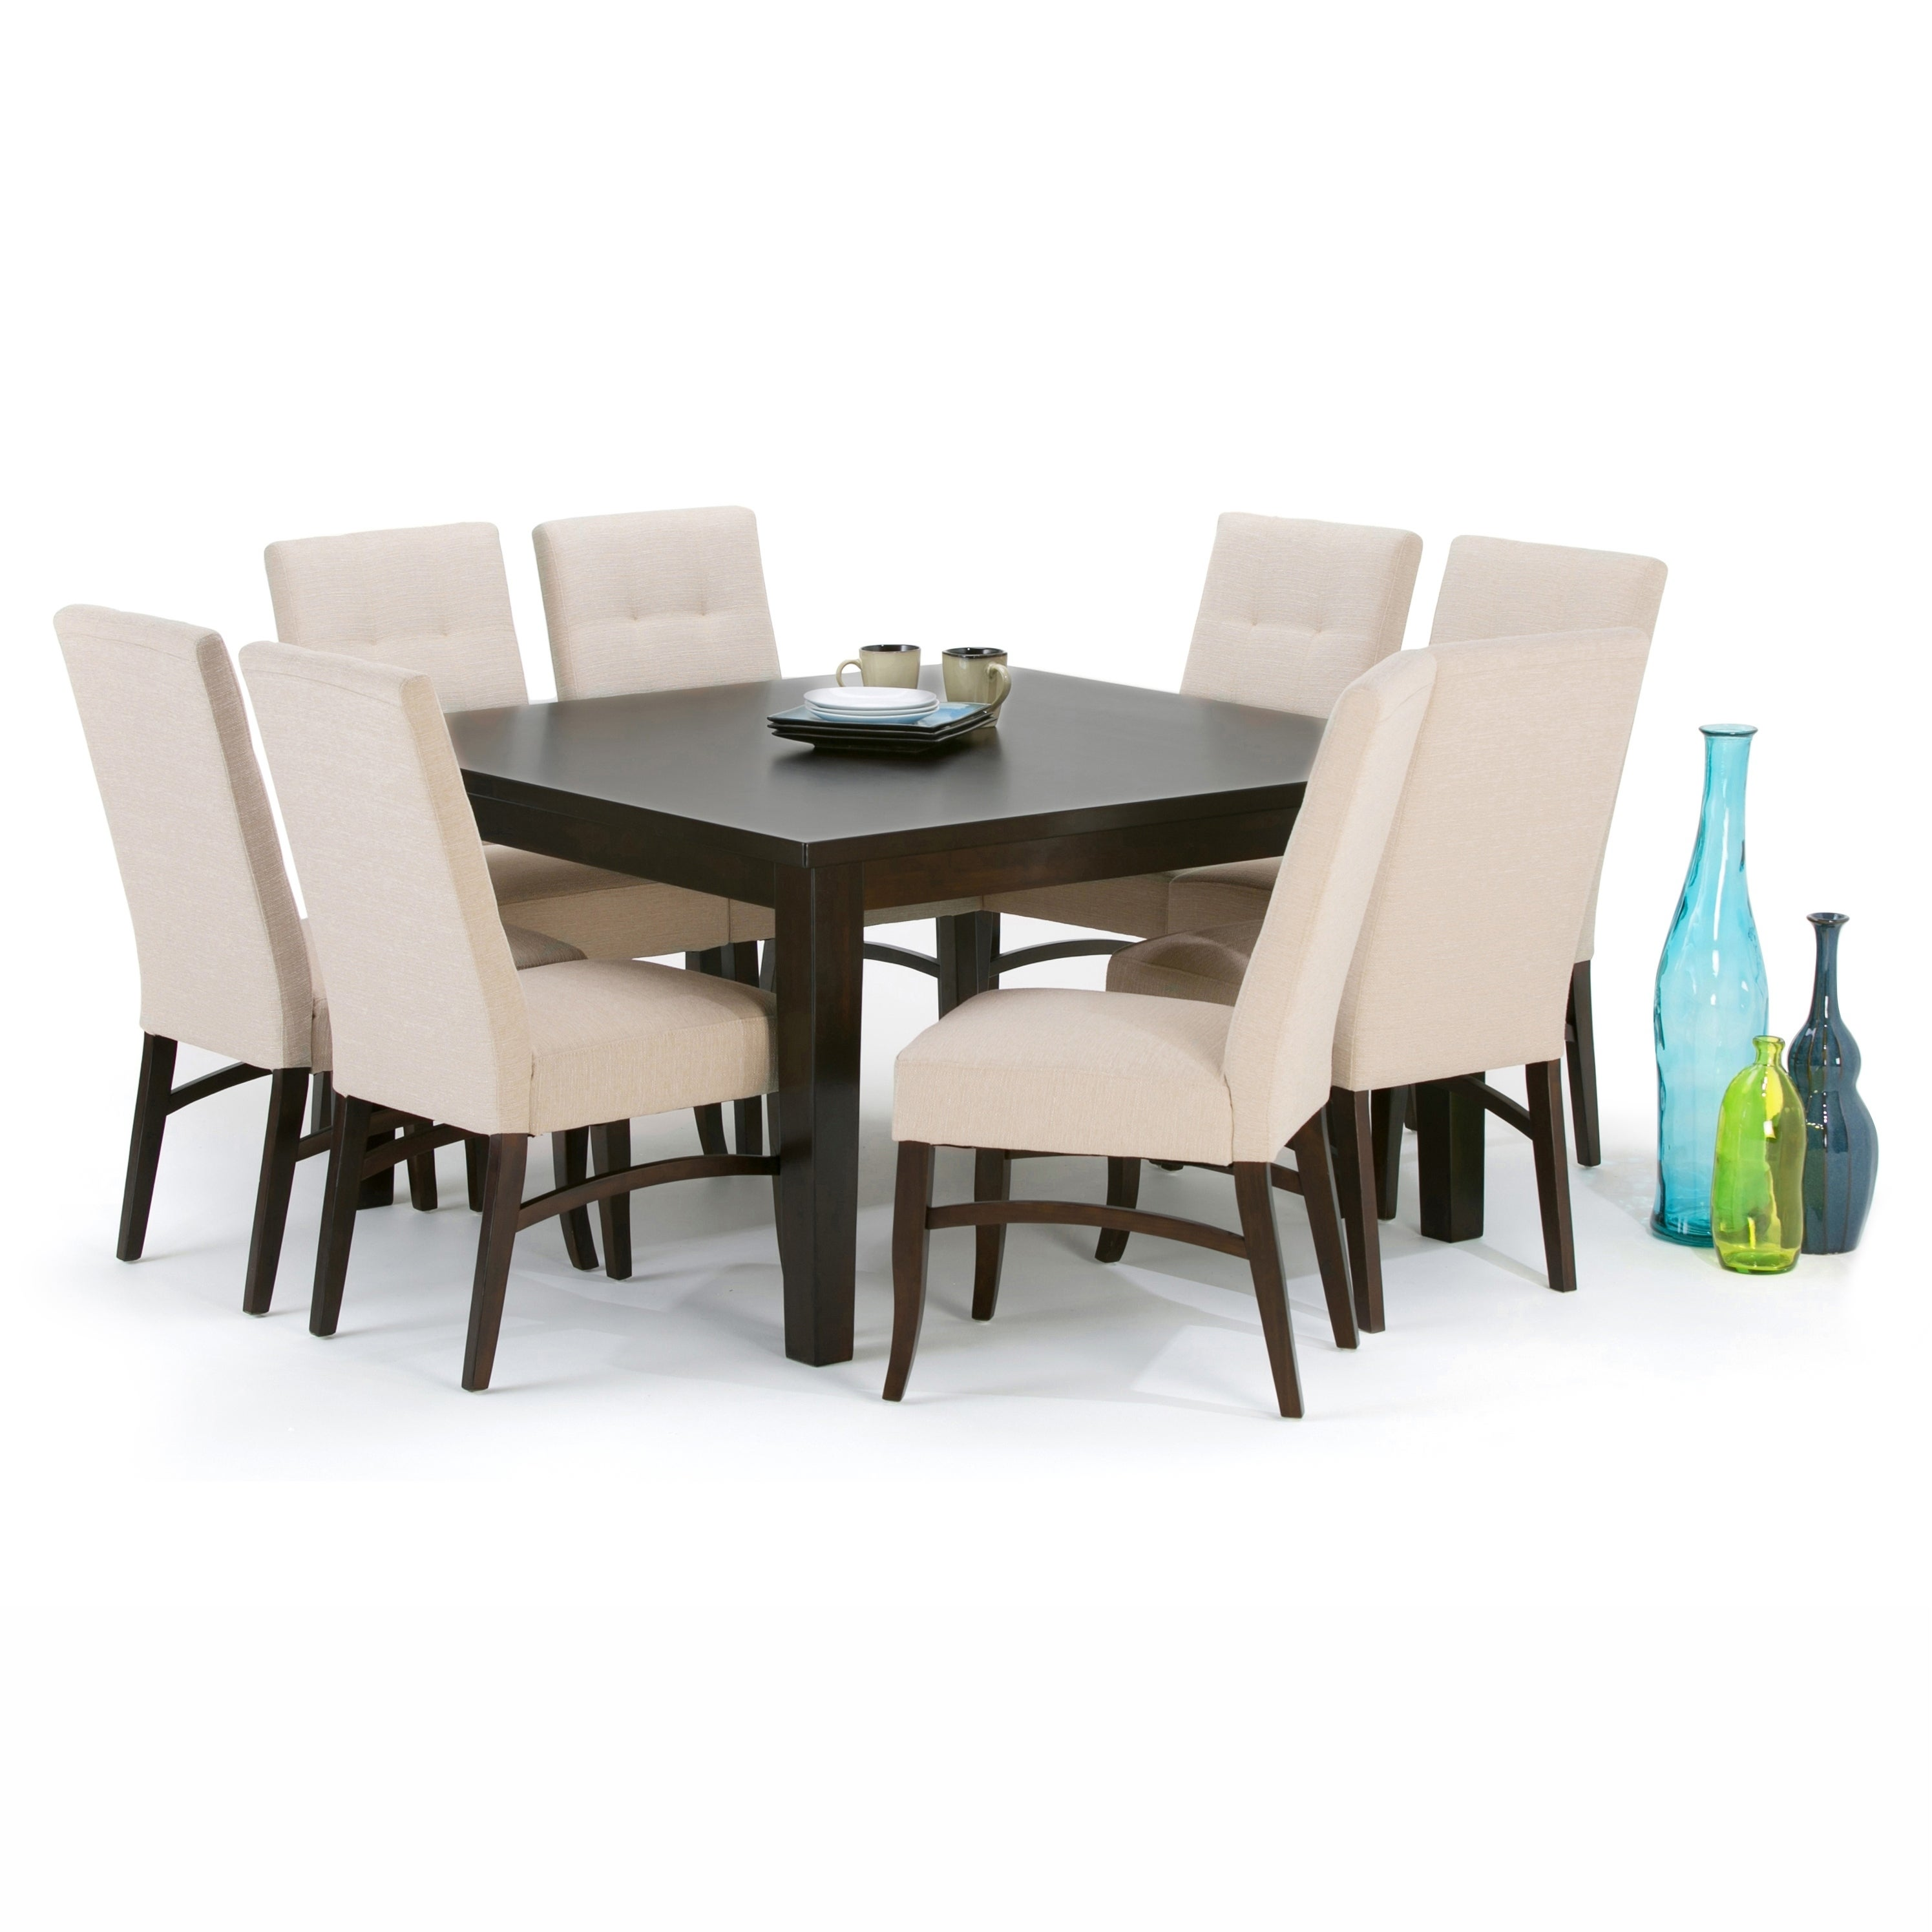 WYNDENHALL Colburn Solid Hardwood and Rubberwood 54 inch x 54 inch Square  Contemporary Dining Table in Java Brown